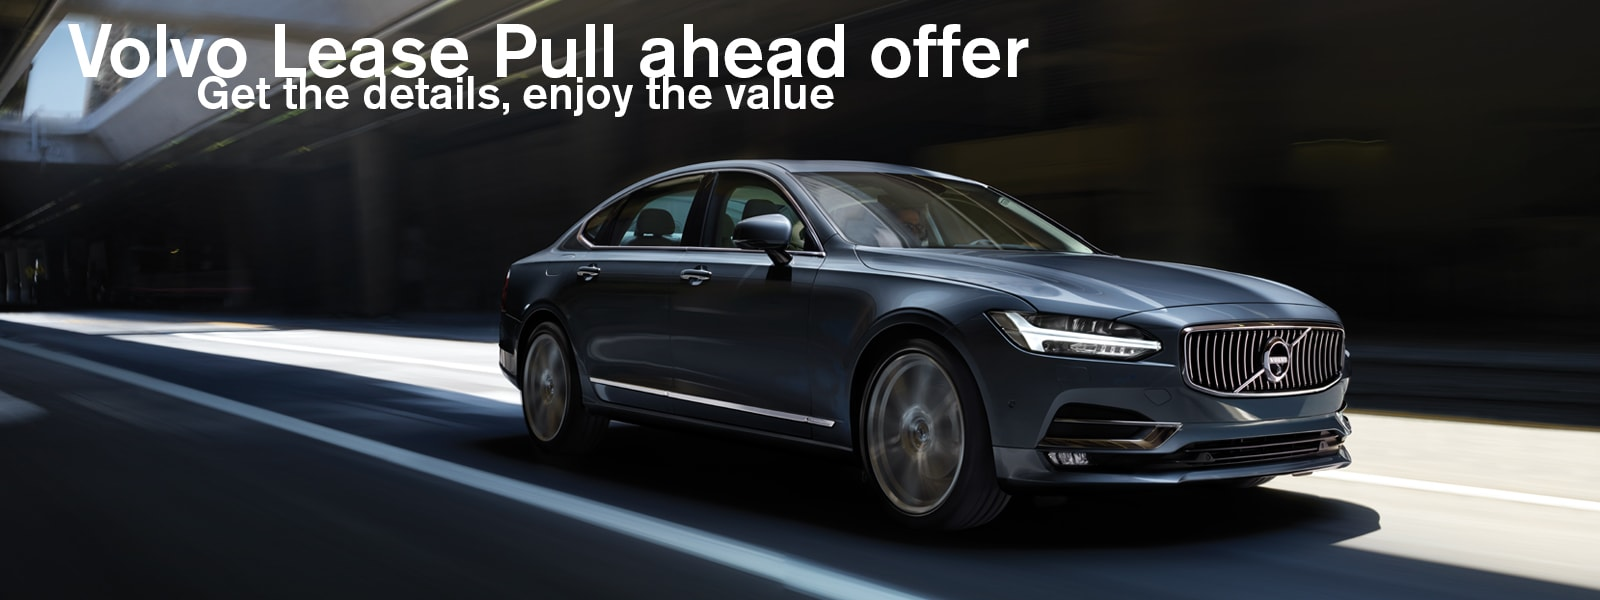 volvo s90 lease pull ahead offer deel volvo cars. Black Bedroom Furniture Sets. Home Design Ideas